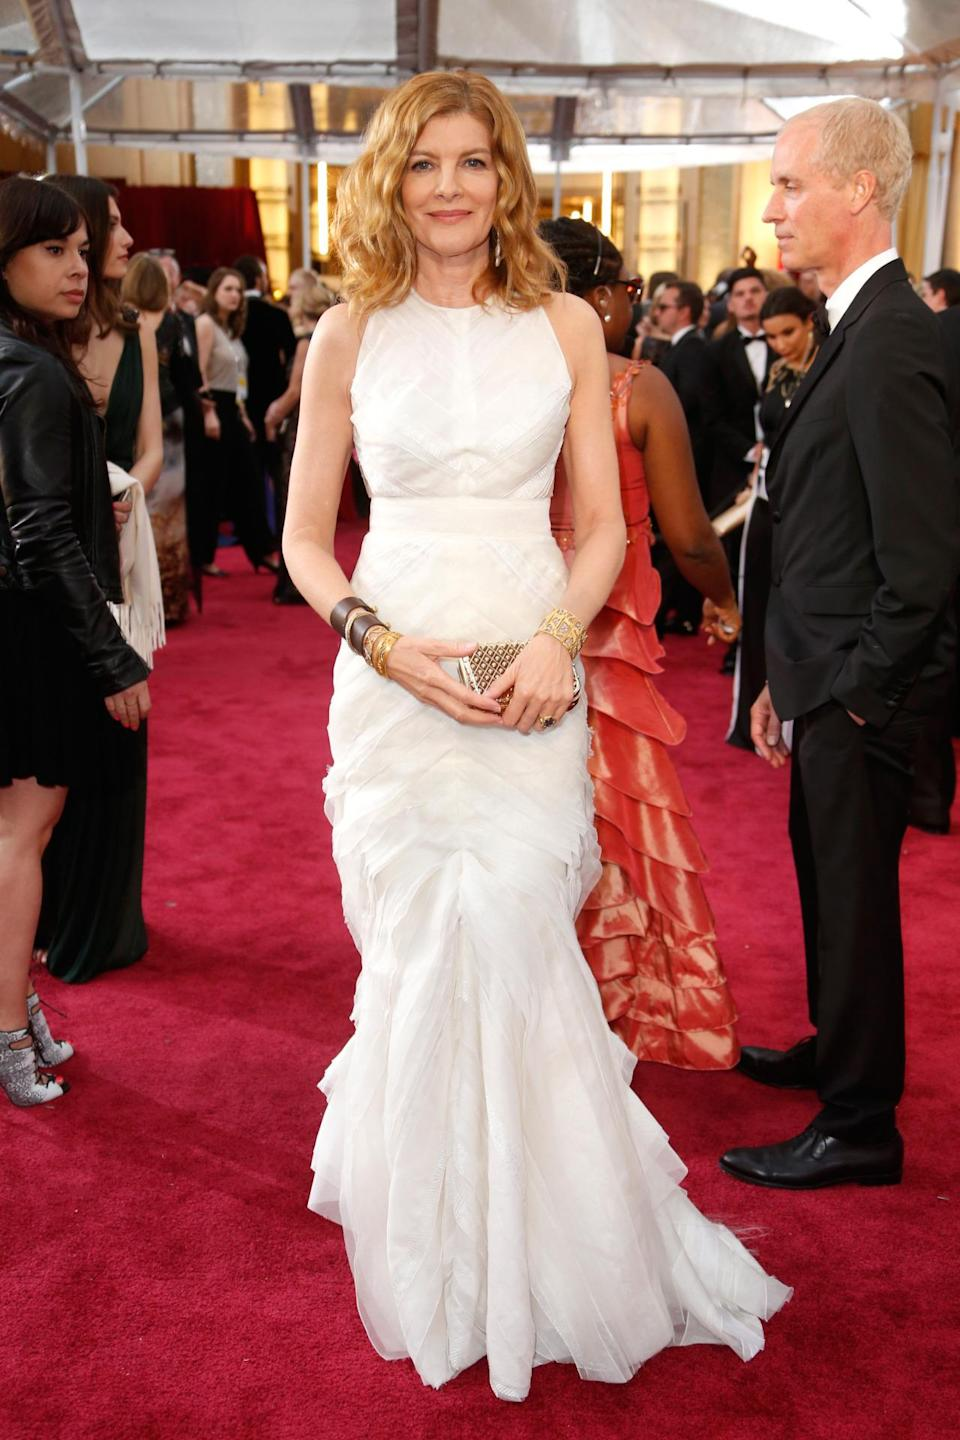 Rene Russo at the 87th Annual Academy Awards doesn't let her age determine her outfit choice. The actress looks young and fresh and nothing like her 61 years.